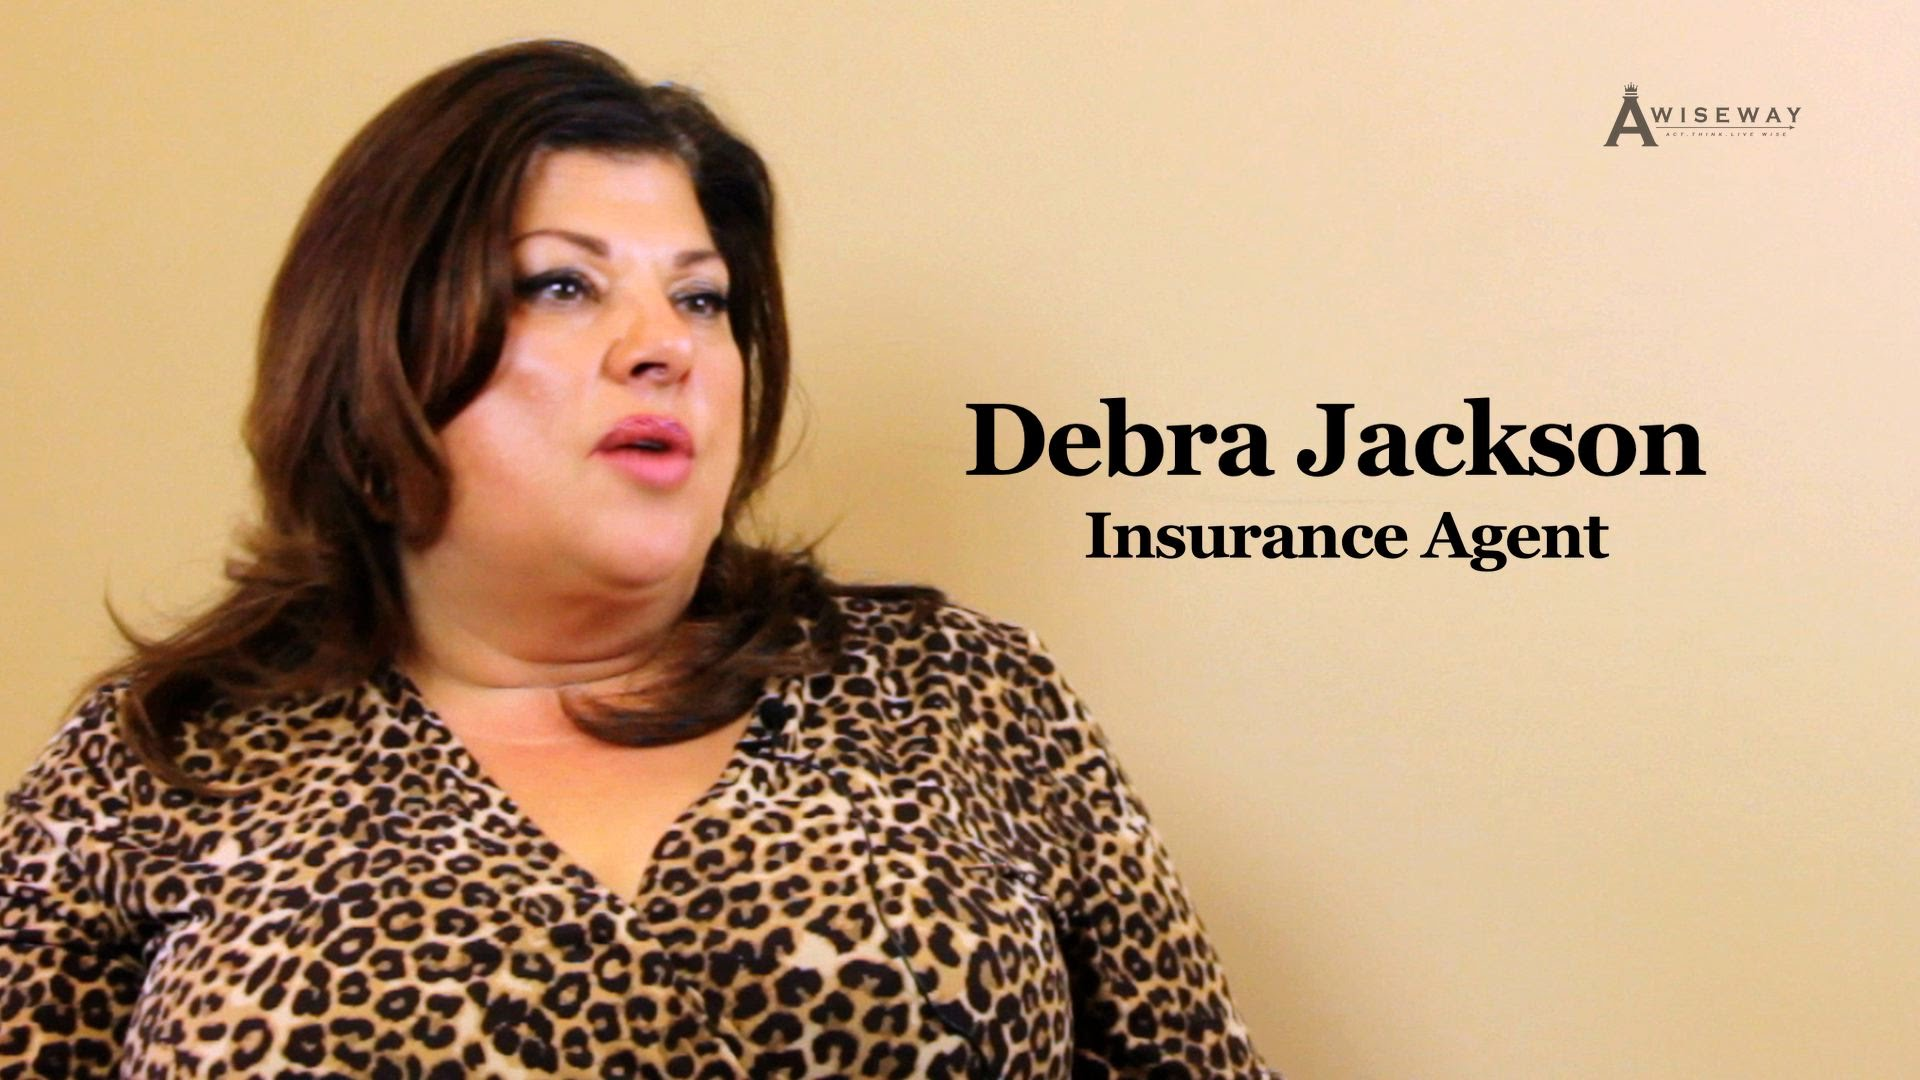 What Licenses are Needed to Become an Insurance Agent?